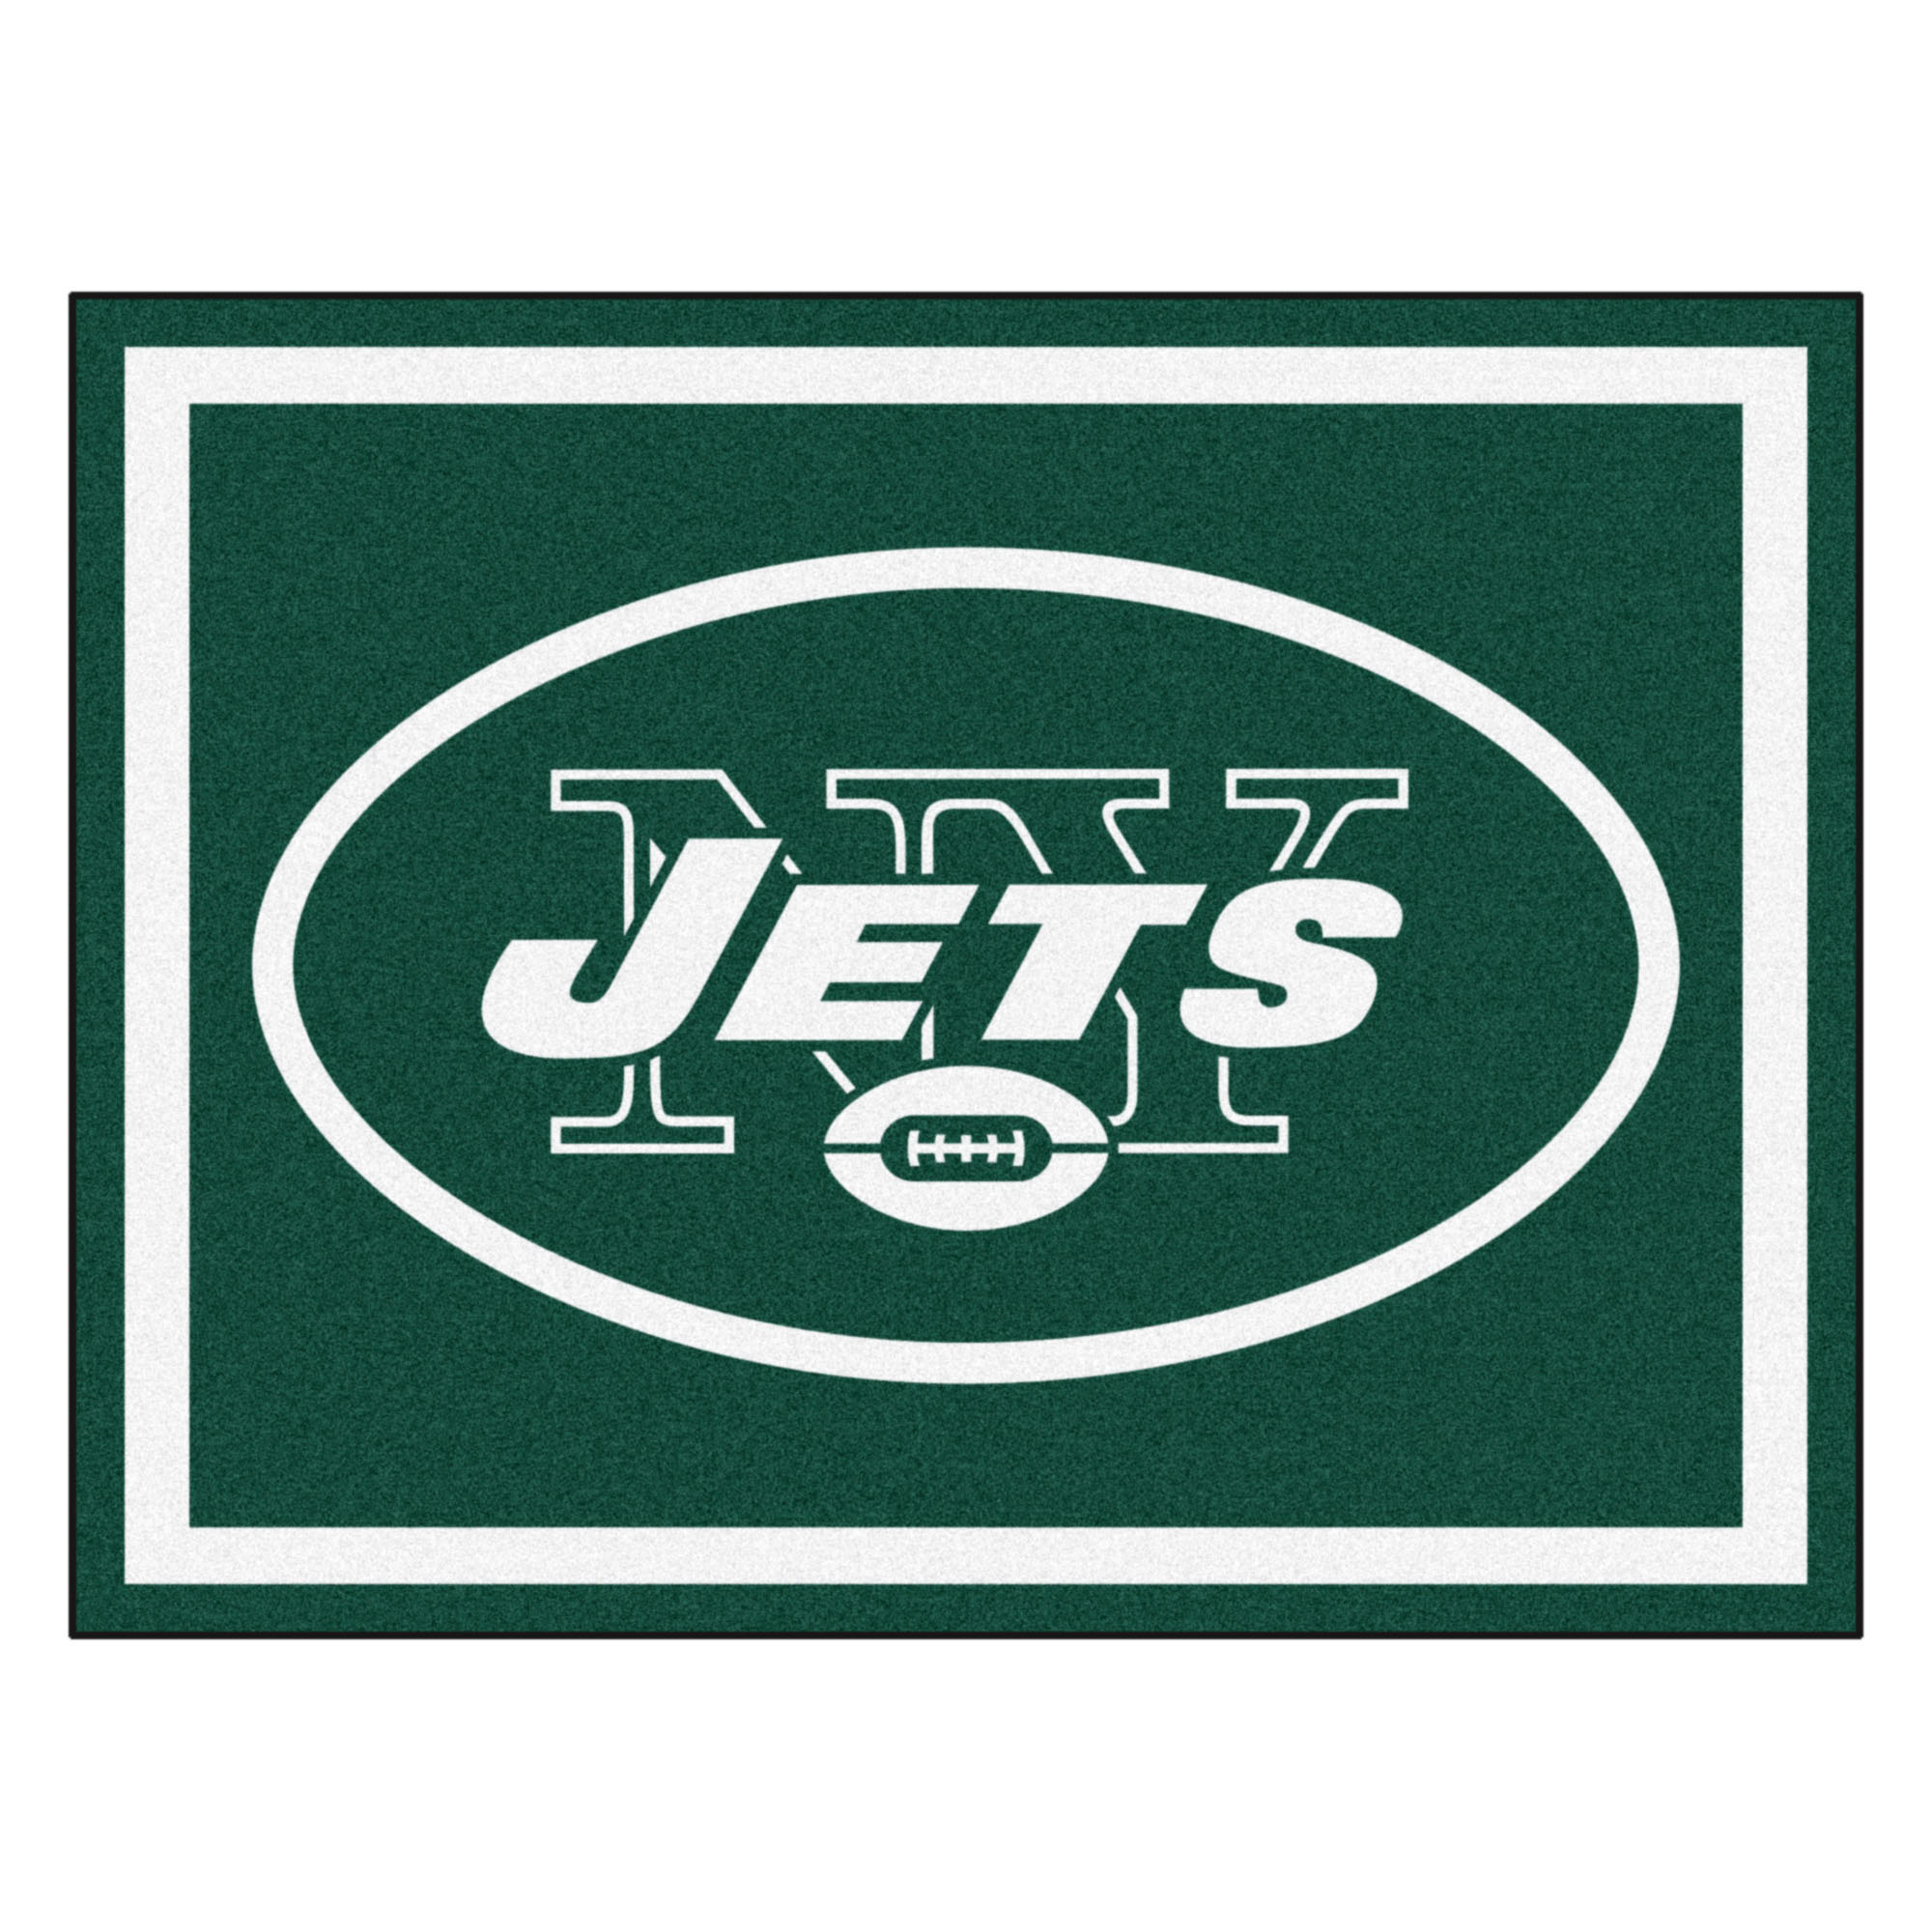 NFL New York Jets 8 x 10 Foot Plush Non-Skid Area Rug